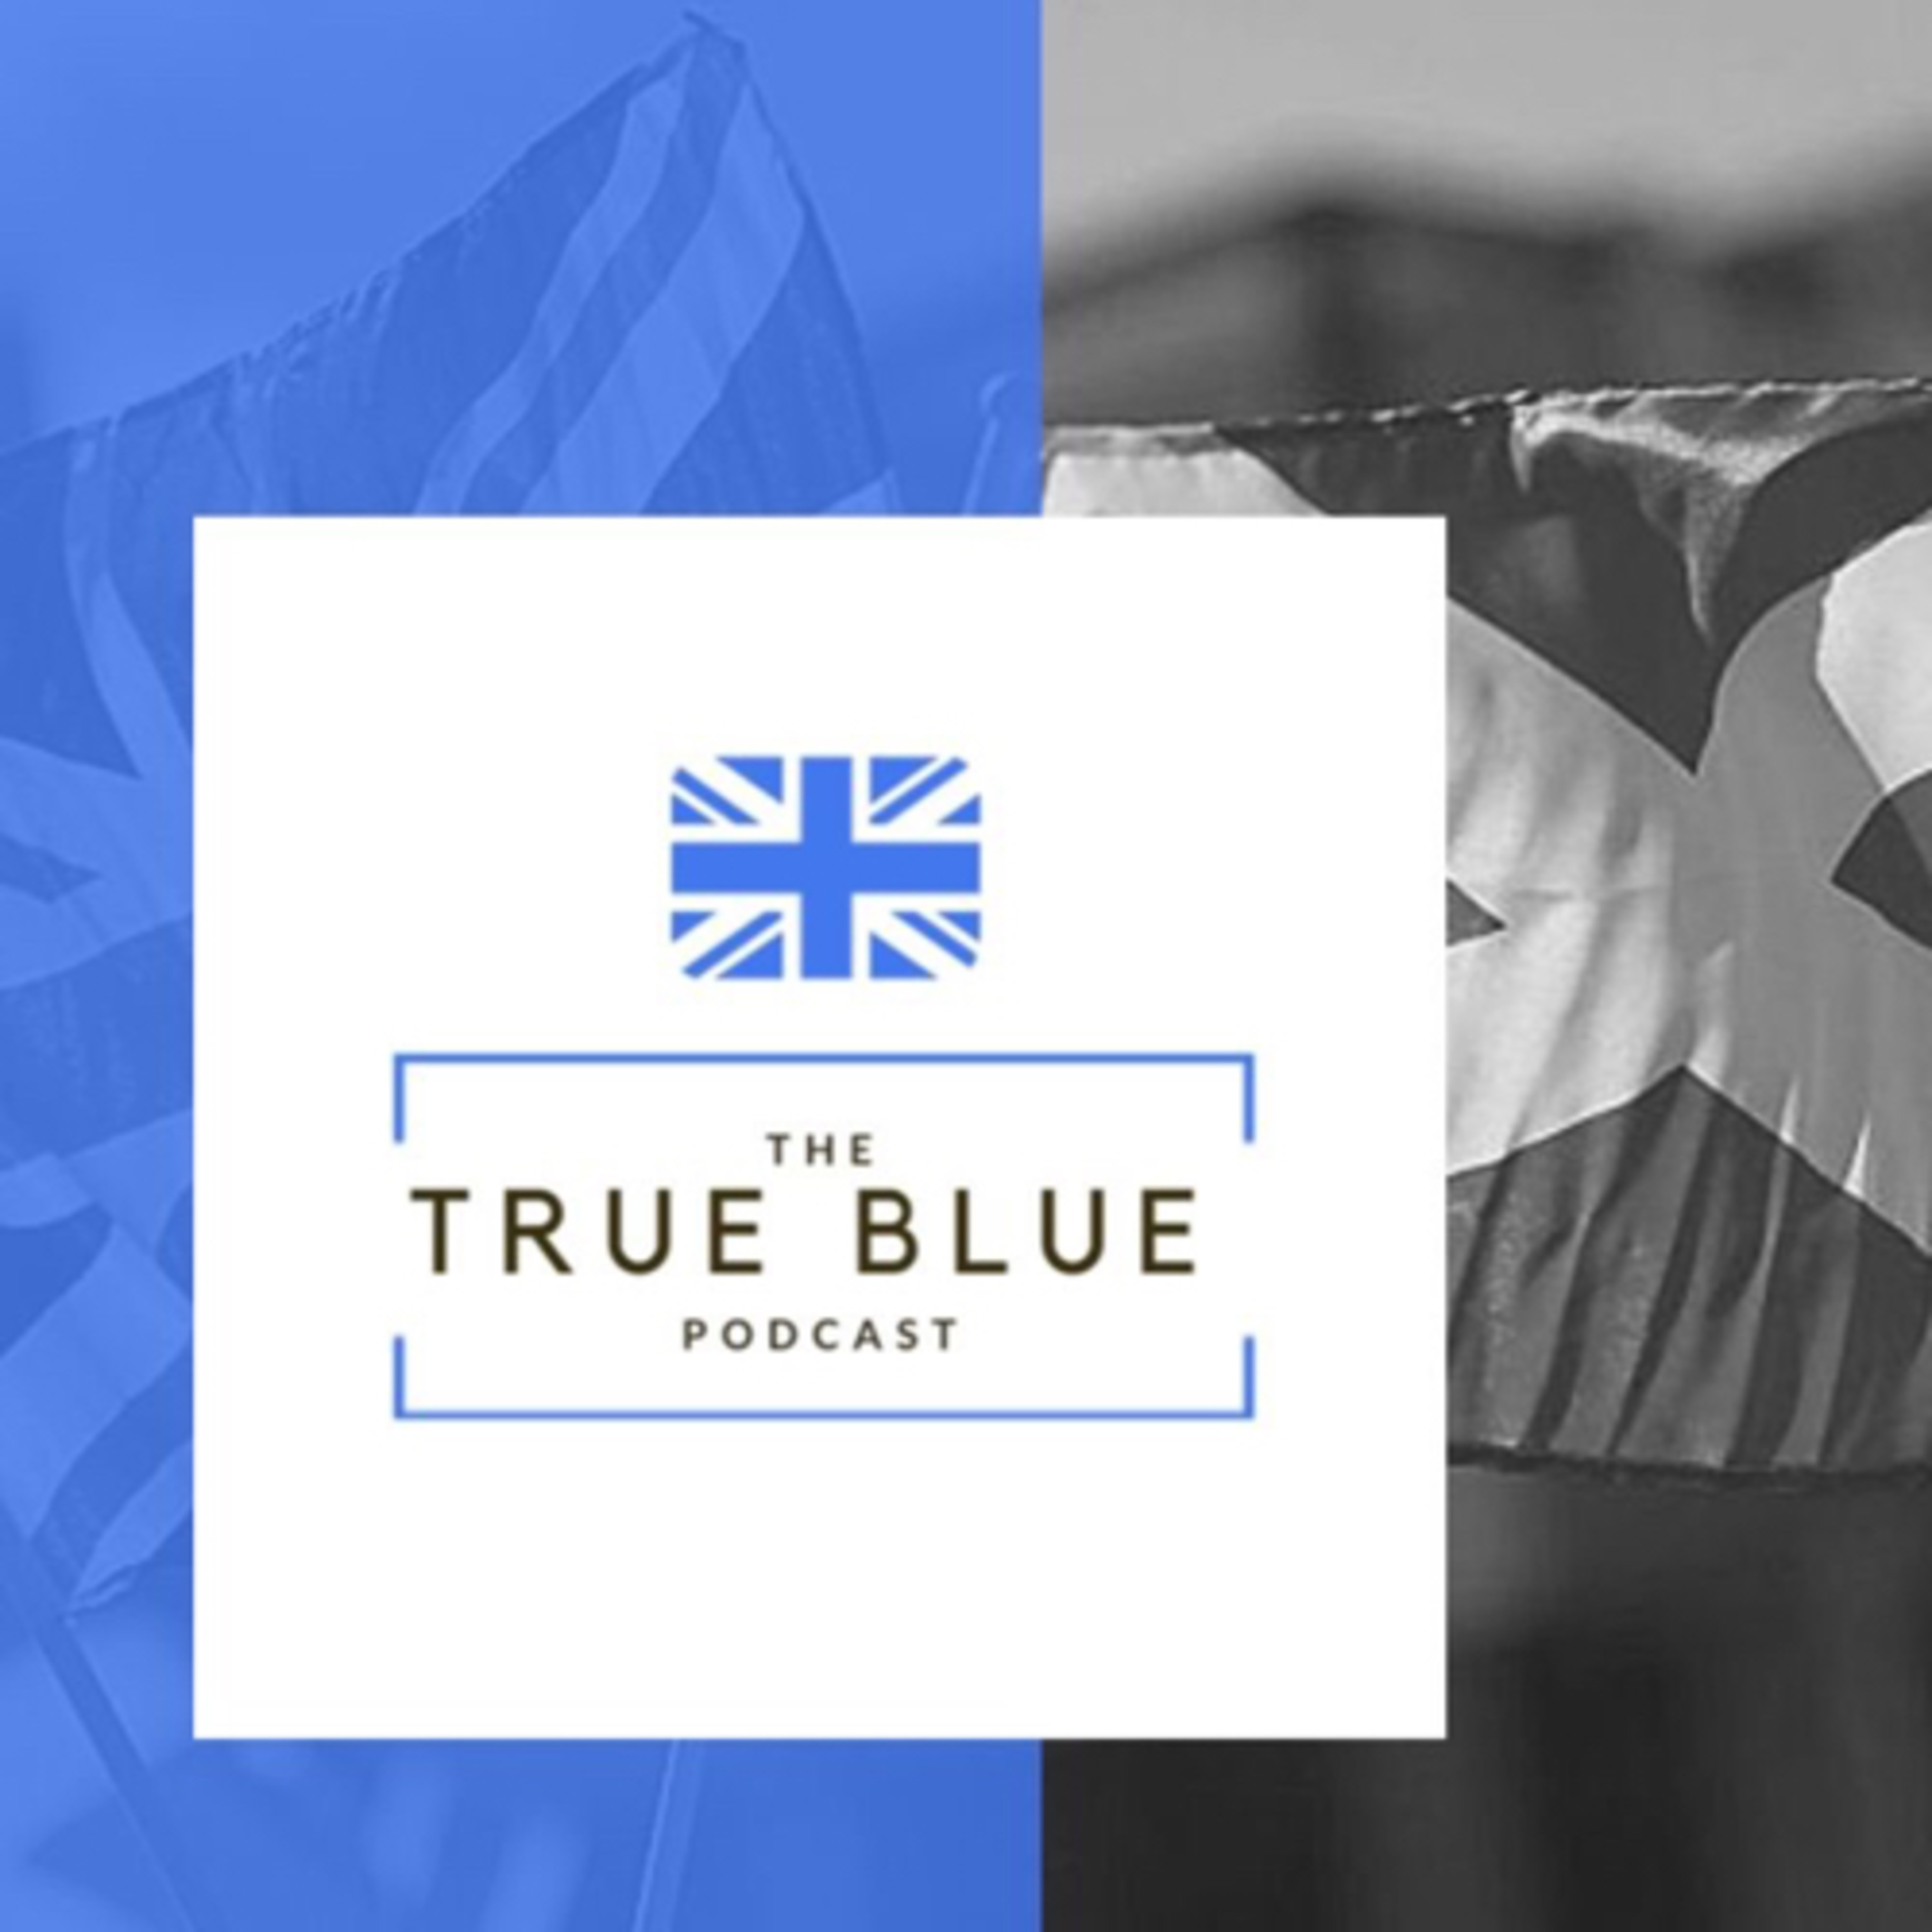 The True Blue Podcast Episode 1 - My View on Independence